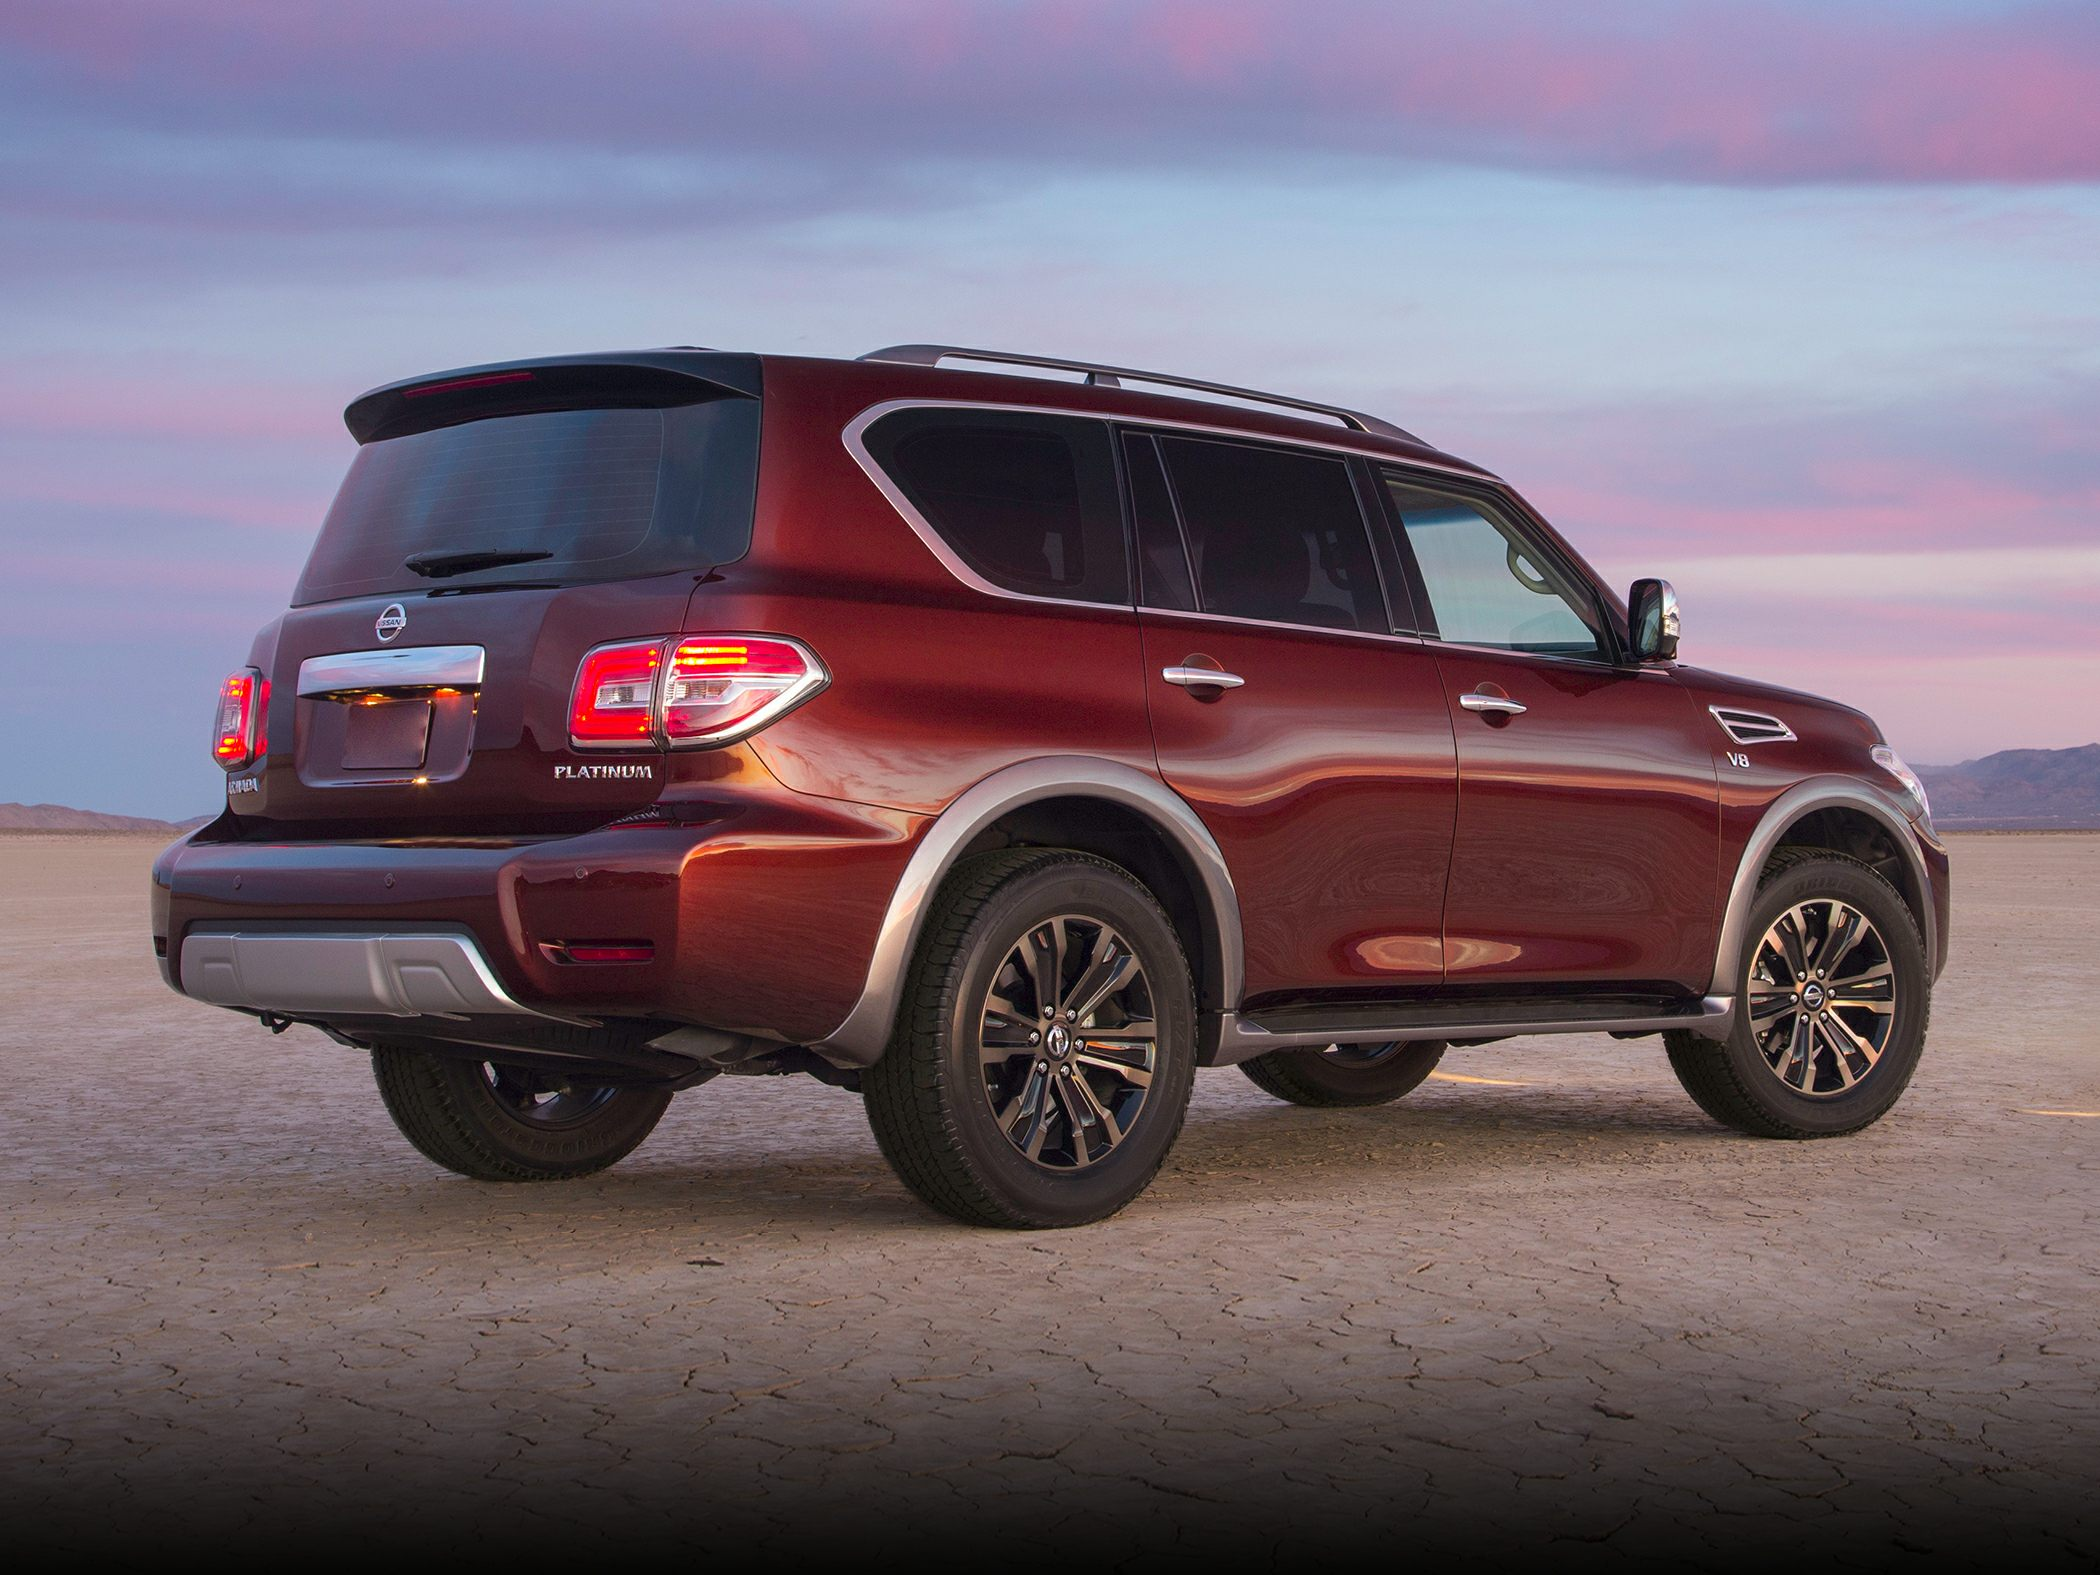 2017 nissan armada deals prices incentives leases overview nissan armada vanachro Images